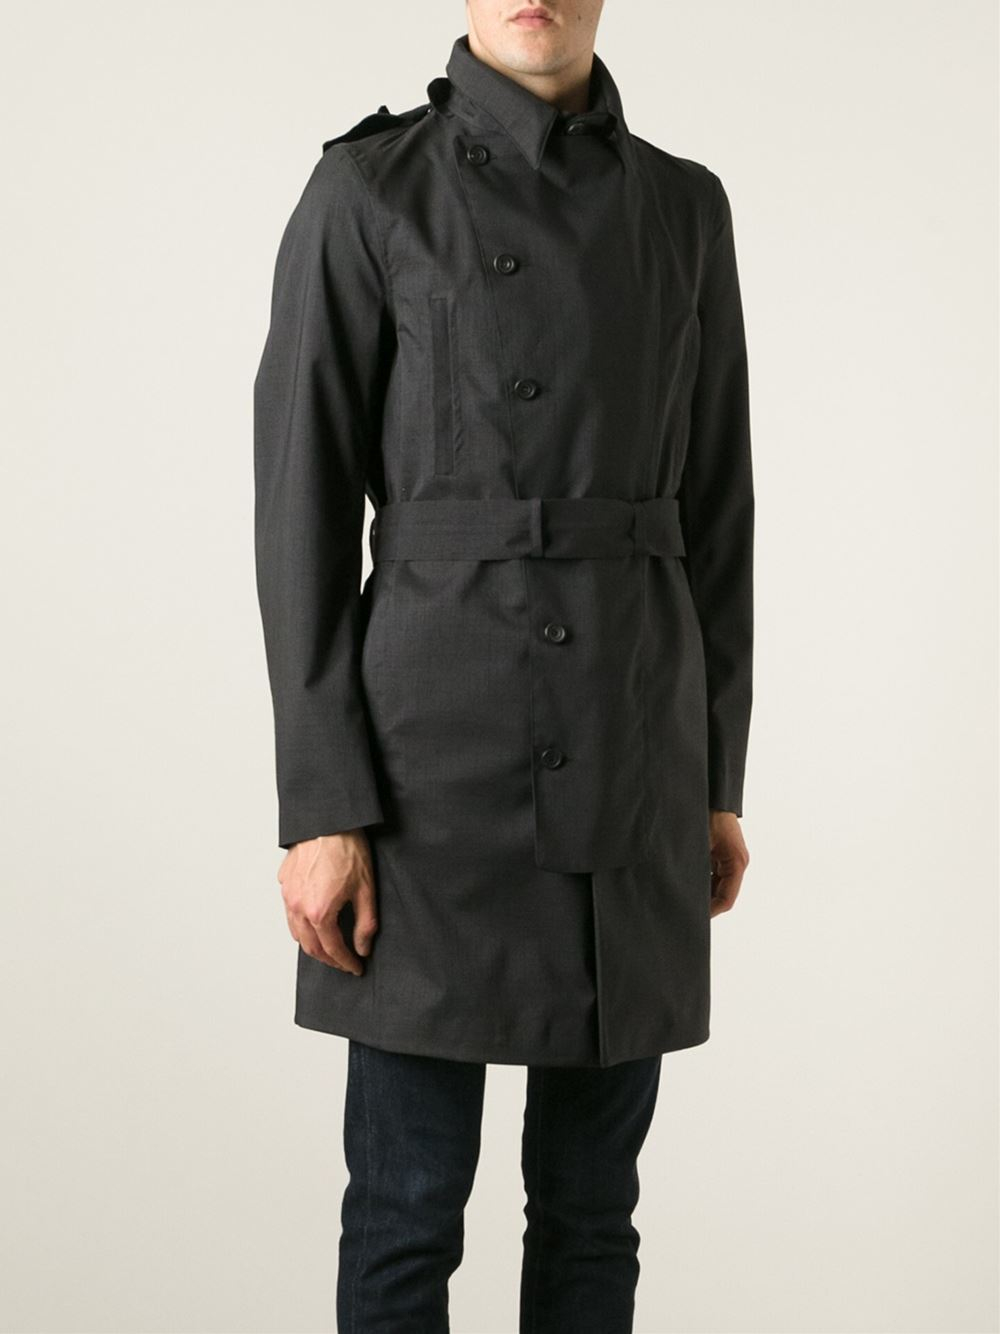 black trench coat with hood - photo #19